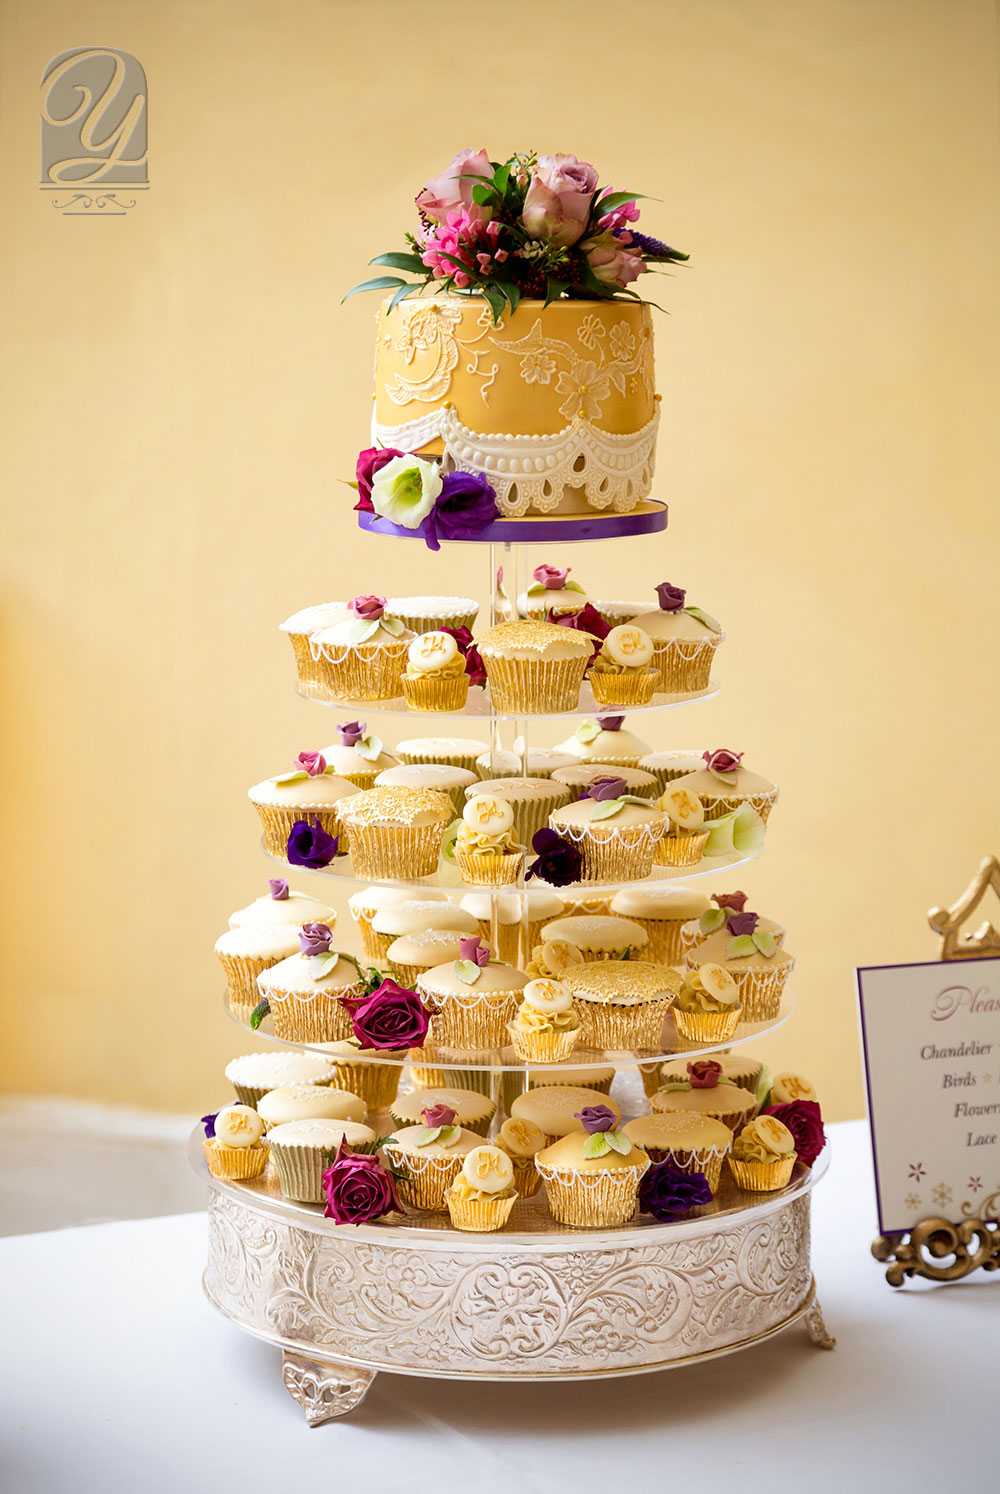 Unusual cupcake golden tower with luxurious shimmered top tier wedding cake from Unique Cakes by Yevnig